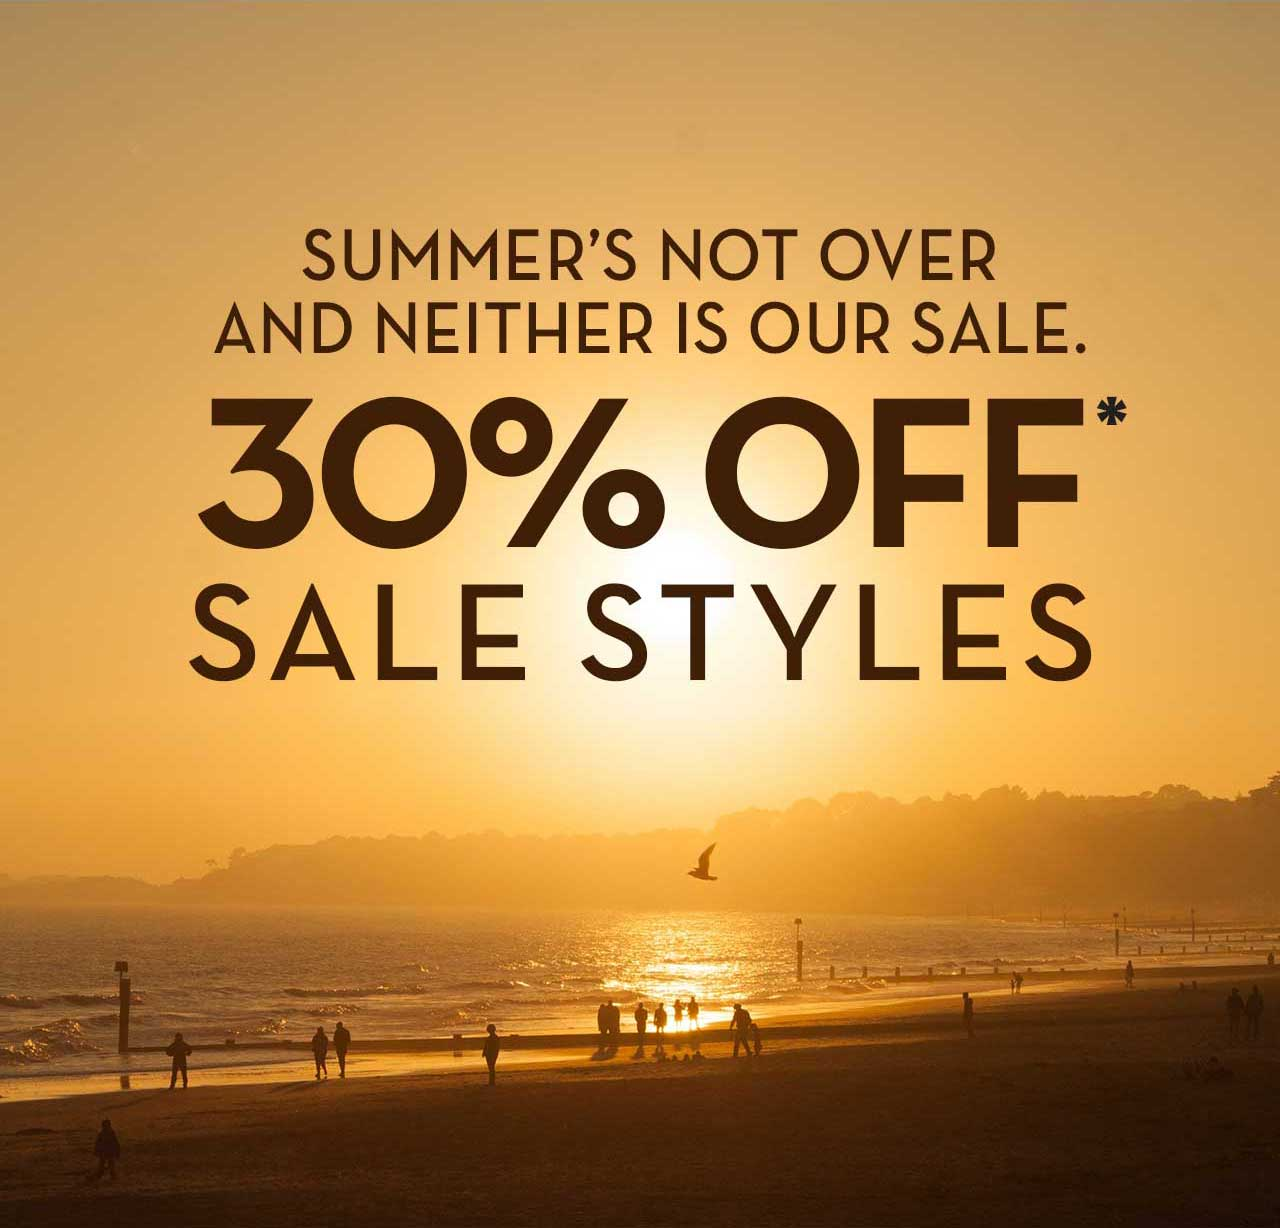 Summer's Not Over And Neither Is Our Sale. 30% OFF SALE STYLES* Shop Now